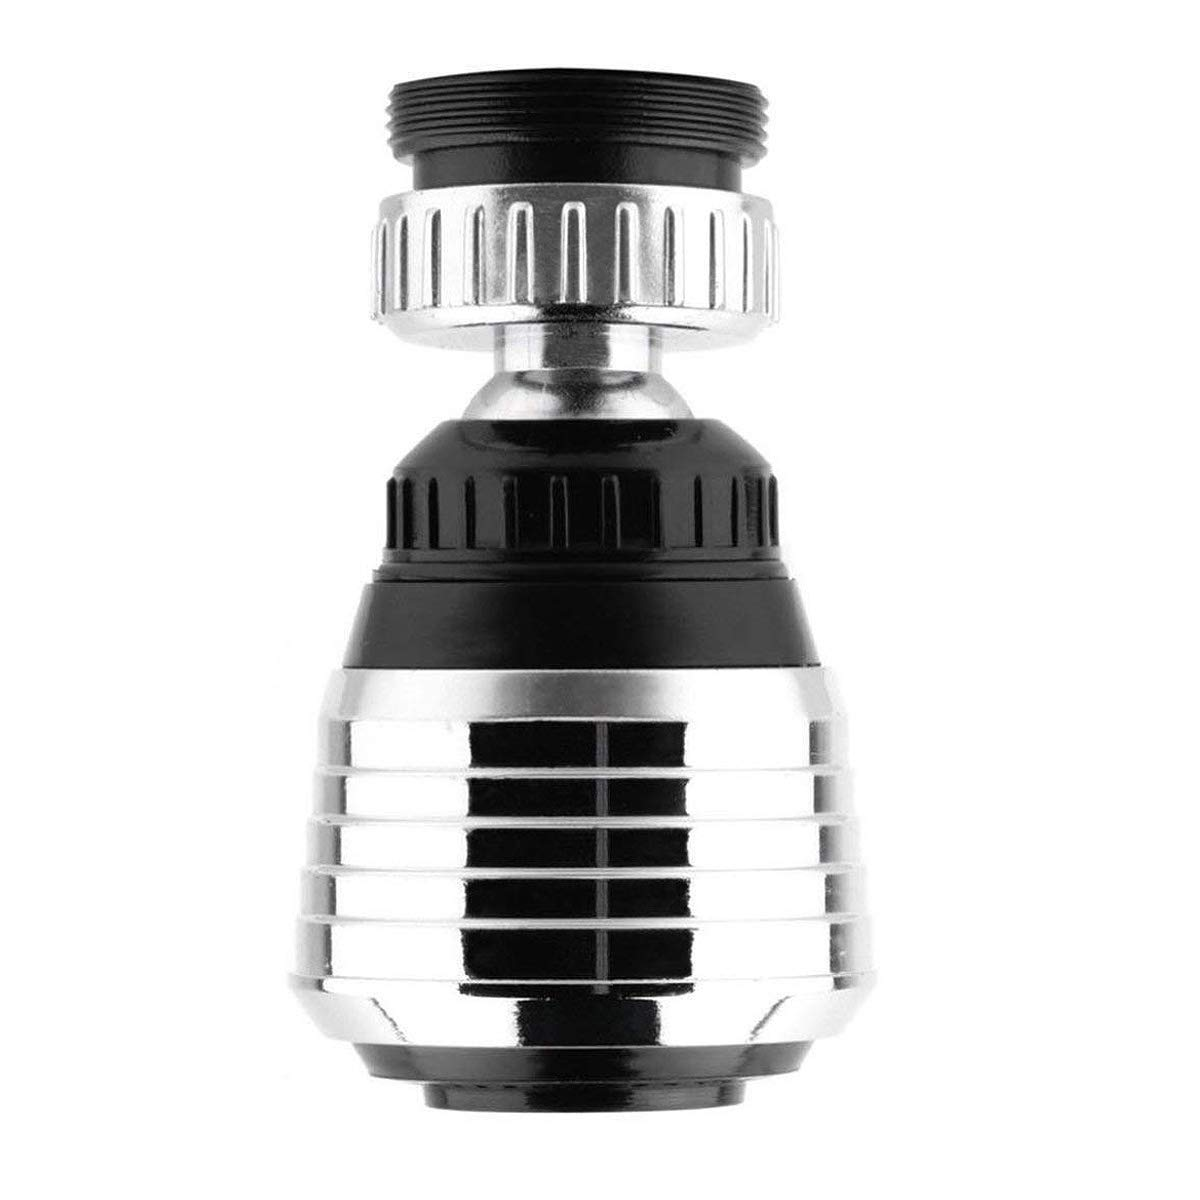 360-Degree Swivel Kitchen Sink faucet Aerator with 2 Function Swivel Sprayer for Kitchen, Bathroom Faucet (Chrome)